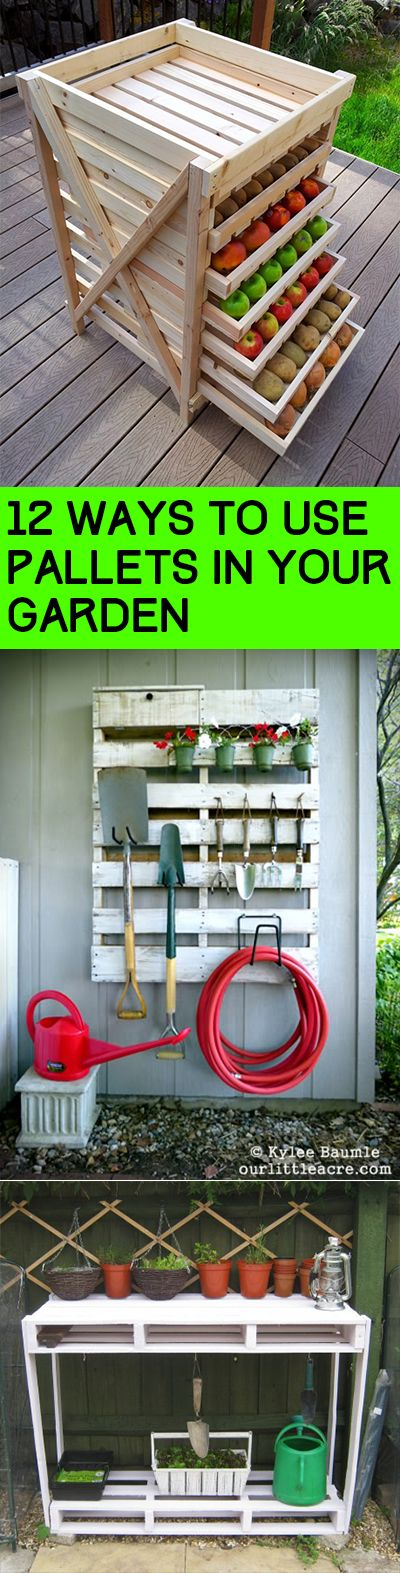 12 Ways to Use Pallets in Your Garden